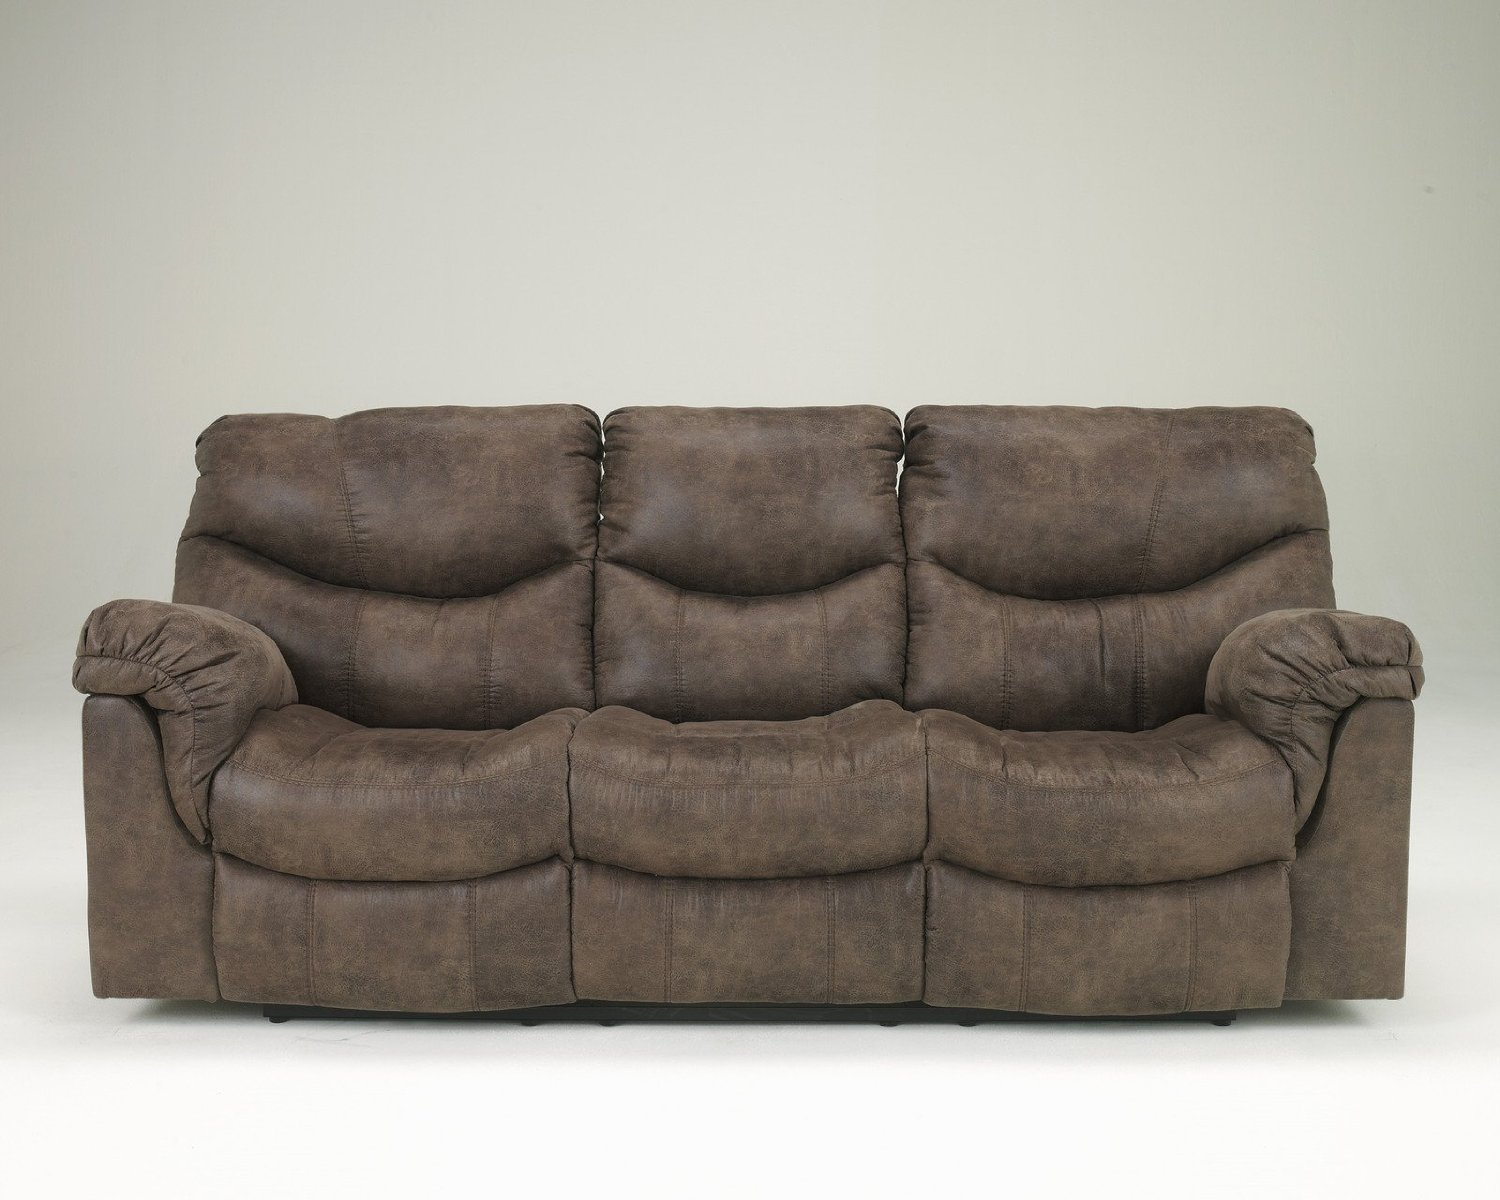 Ashley Furniture Sectional Sofa Reviews Vladimir Kagan Cad The Best Home Furnishings Reclining